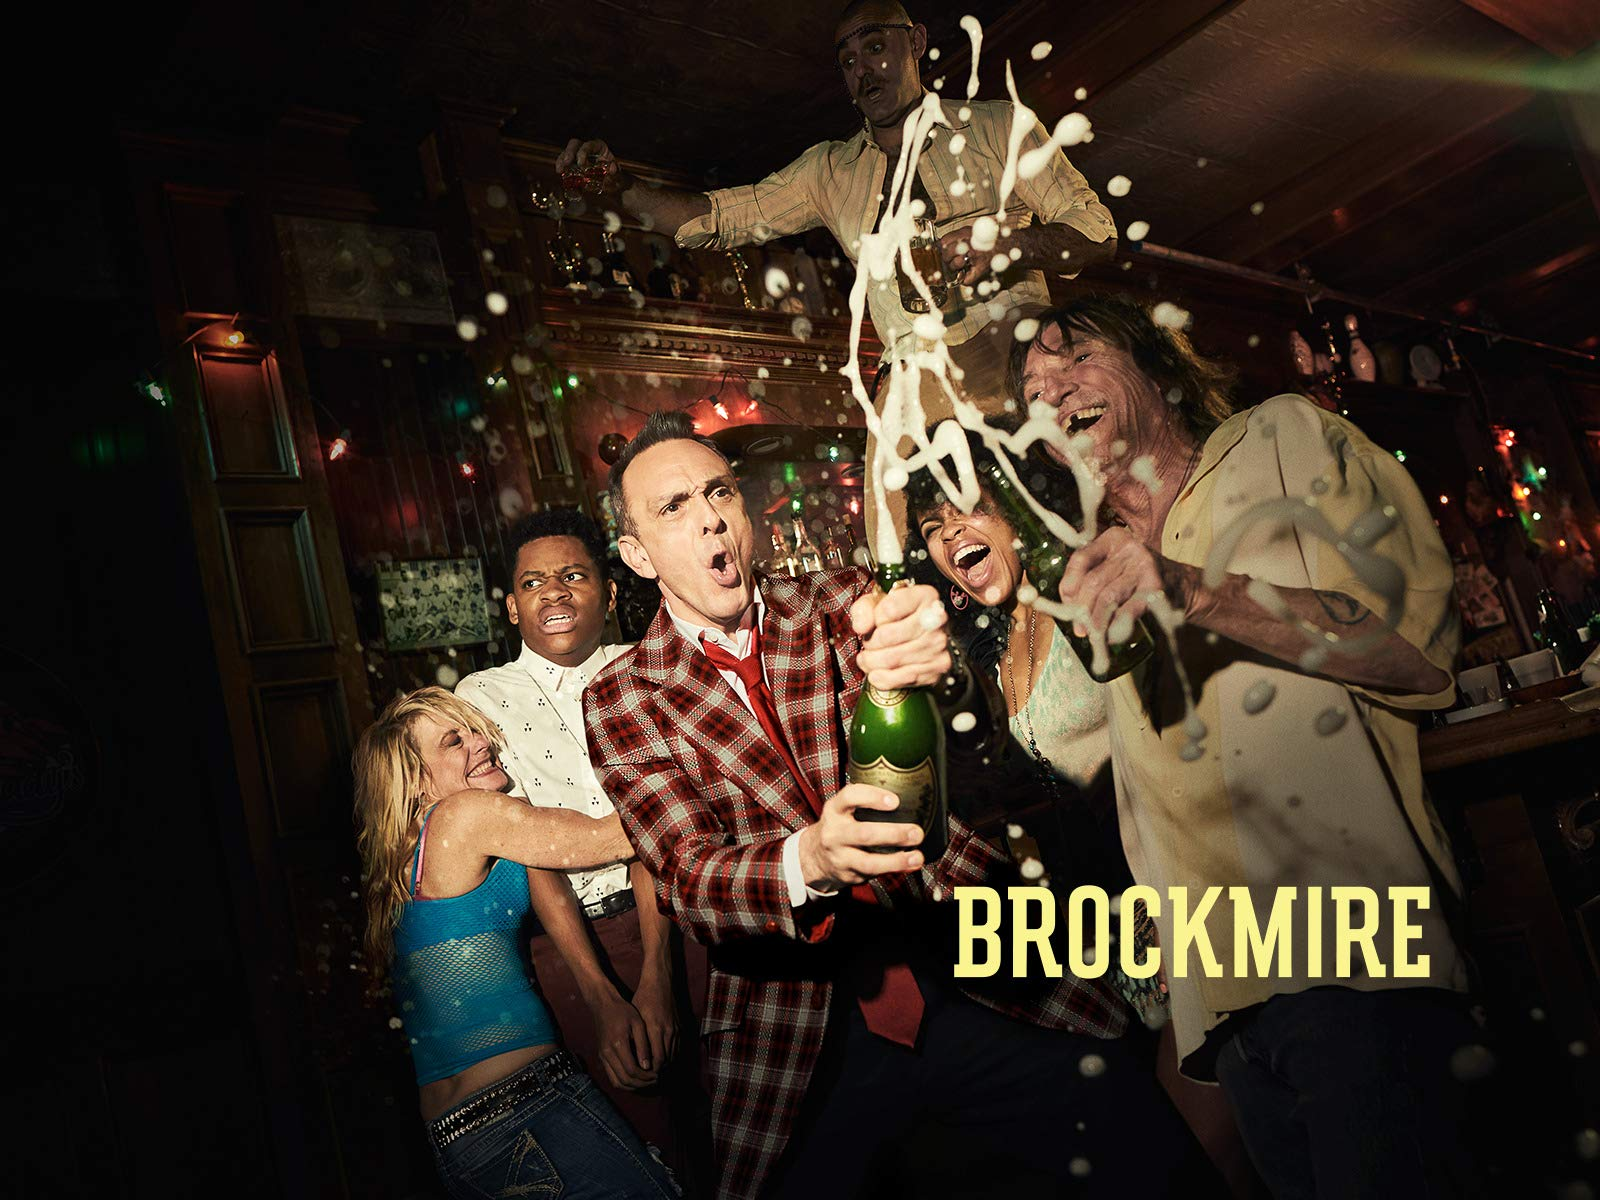 Brockmire on Amazon Prime Video UK